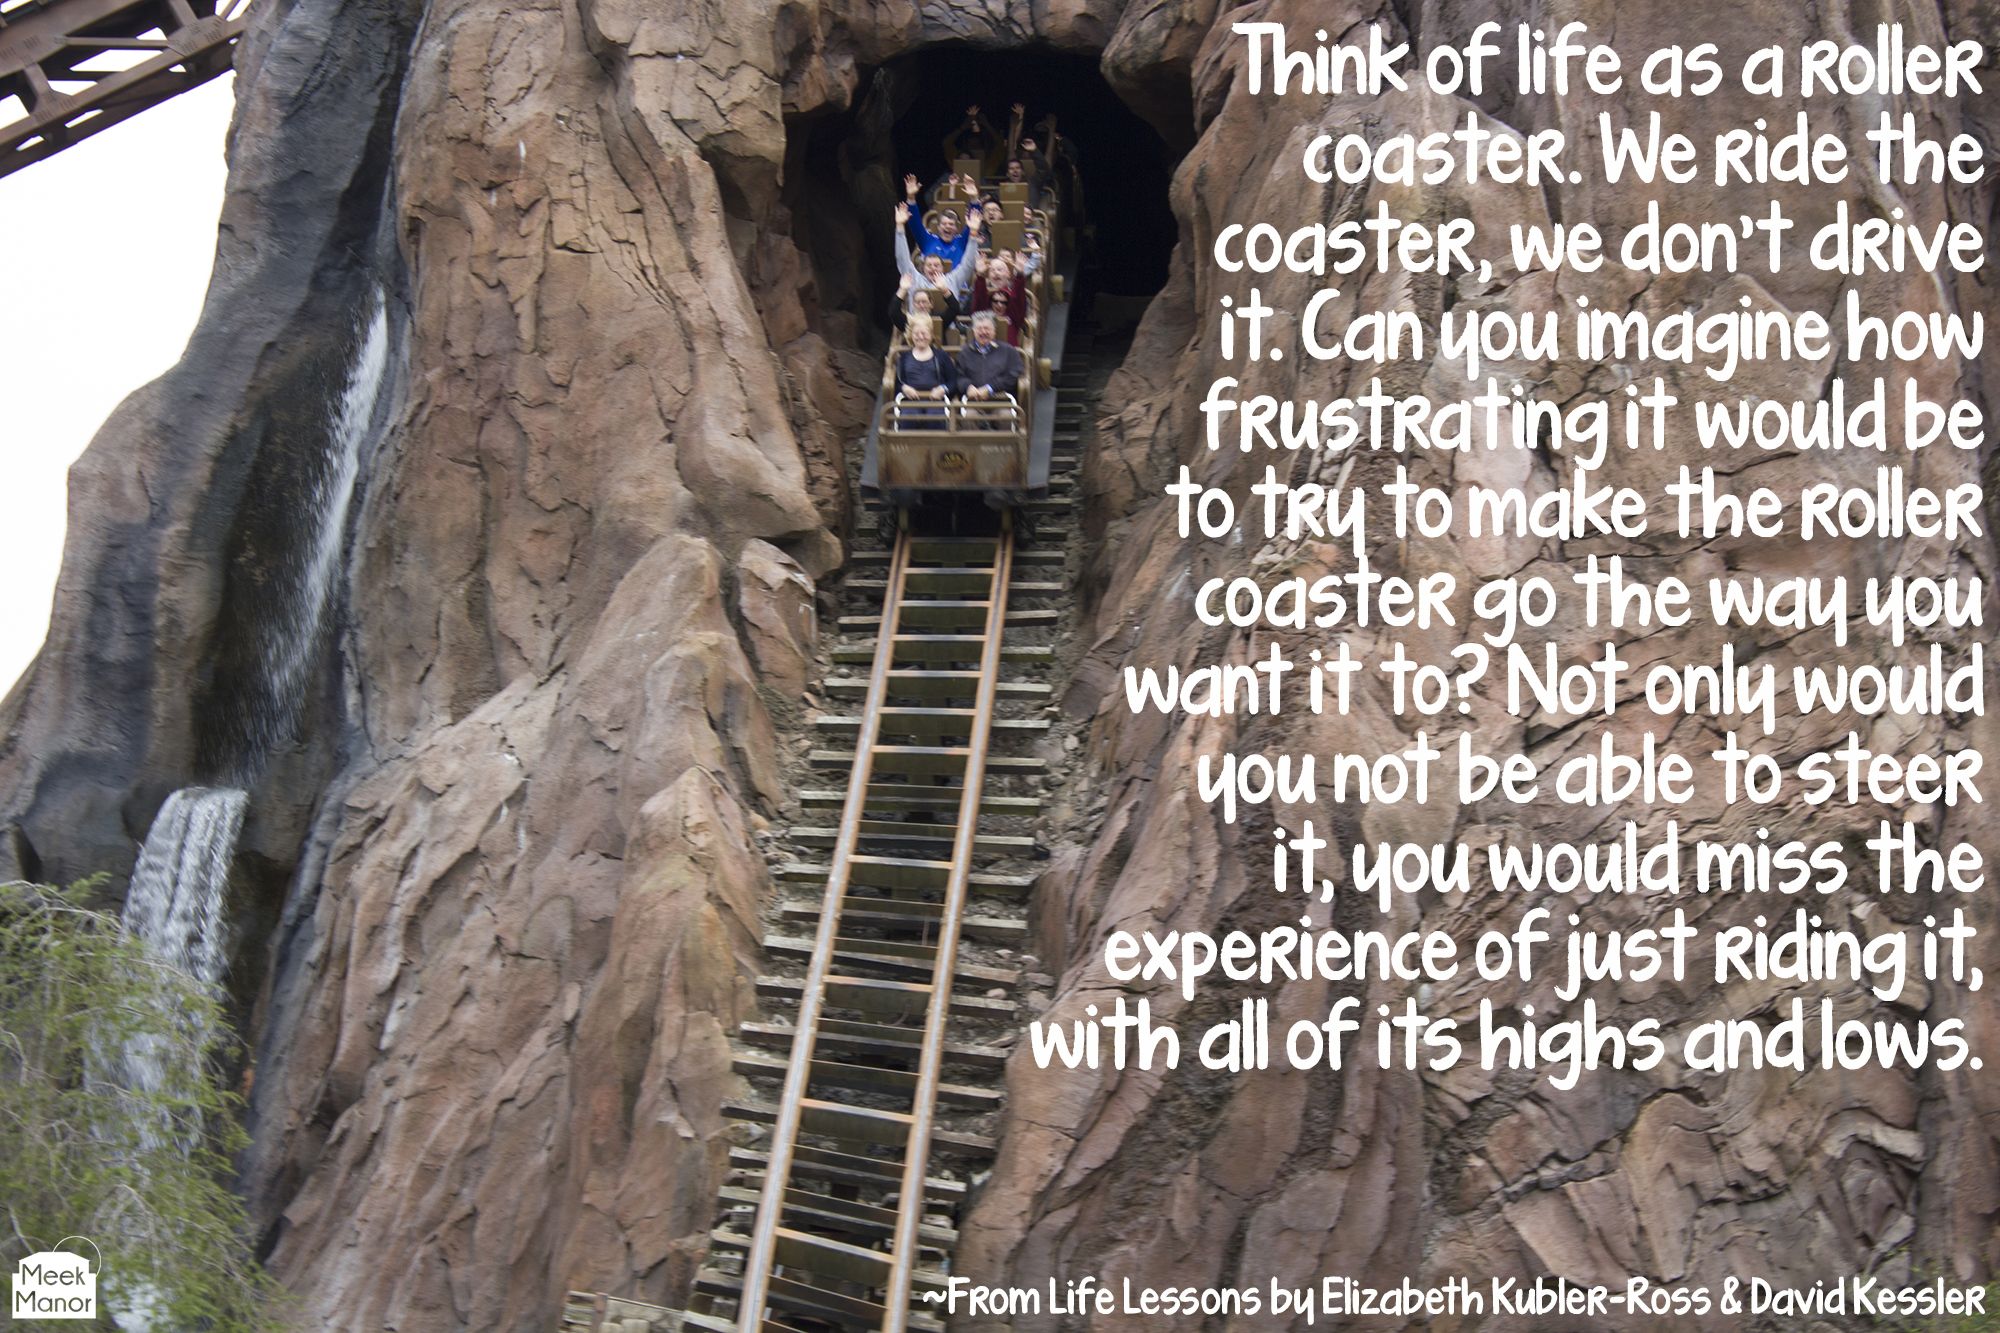 Thursday Quote On Friday Life As A Roller Coaster Meek Manor